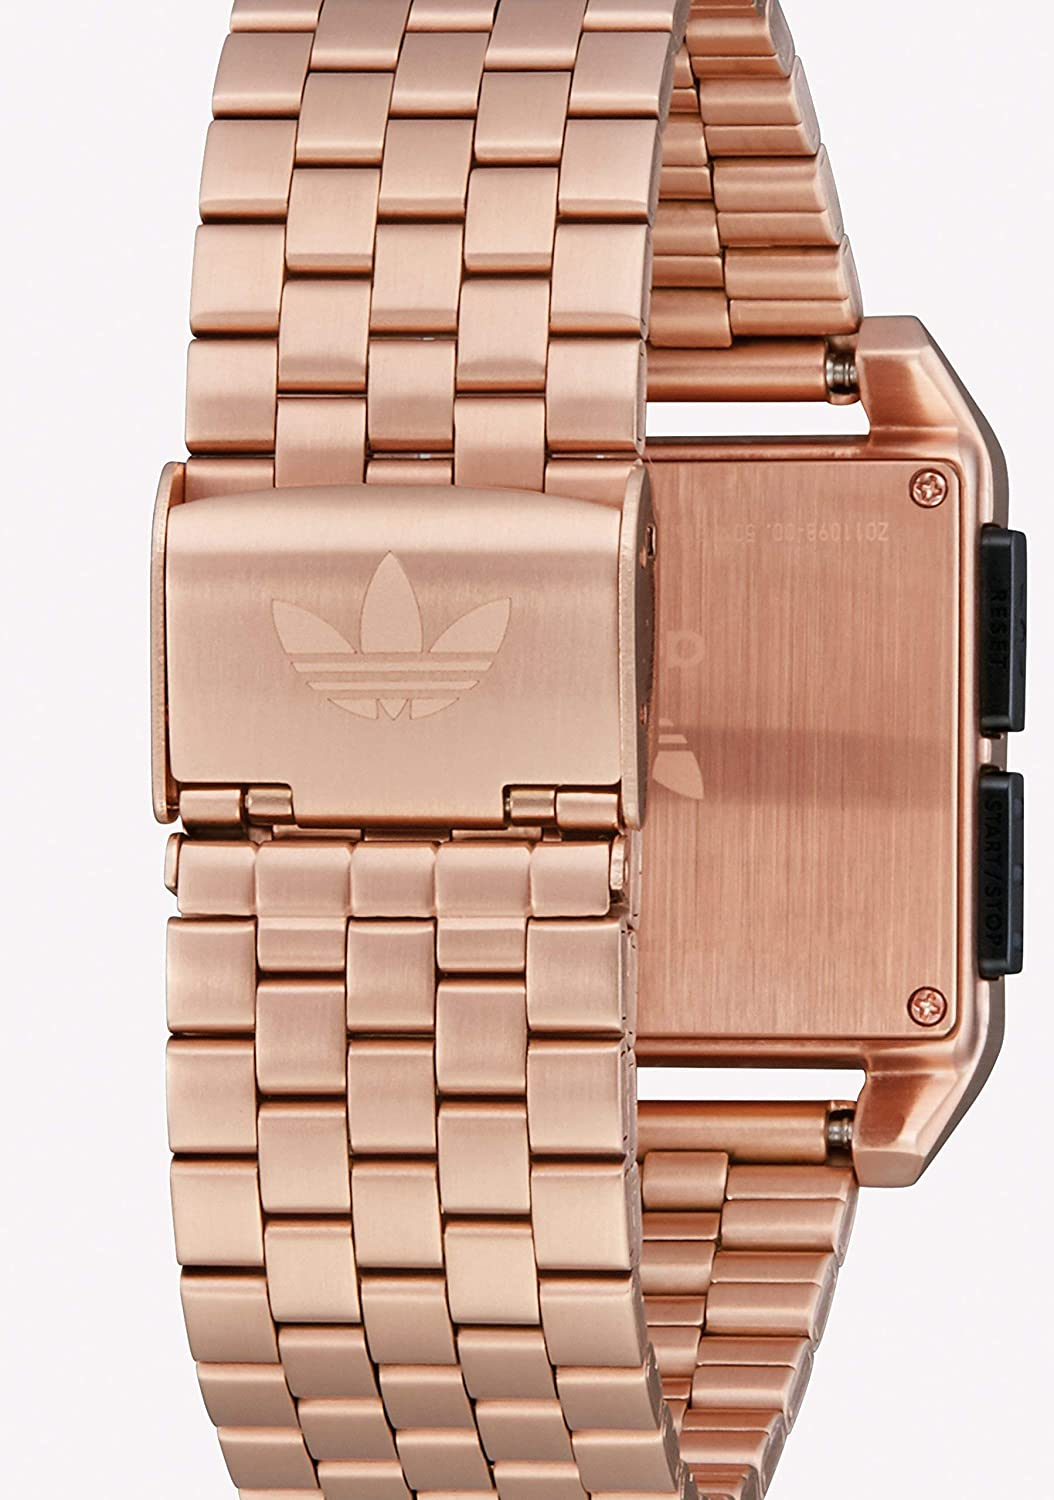 Adidas Watches Archive_M1. Men's 70's Style Stainless Steel Digital Watch with 5 Link Bracelet (36 mm). Rose Gold/Black